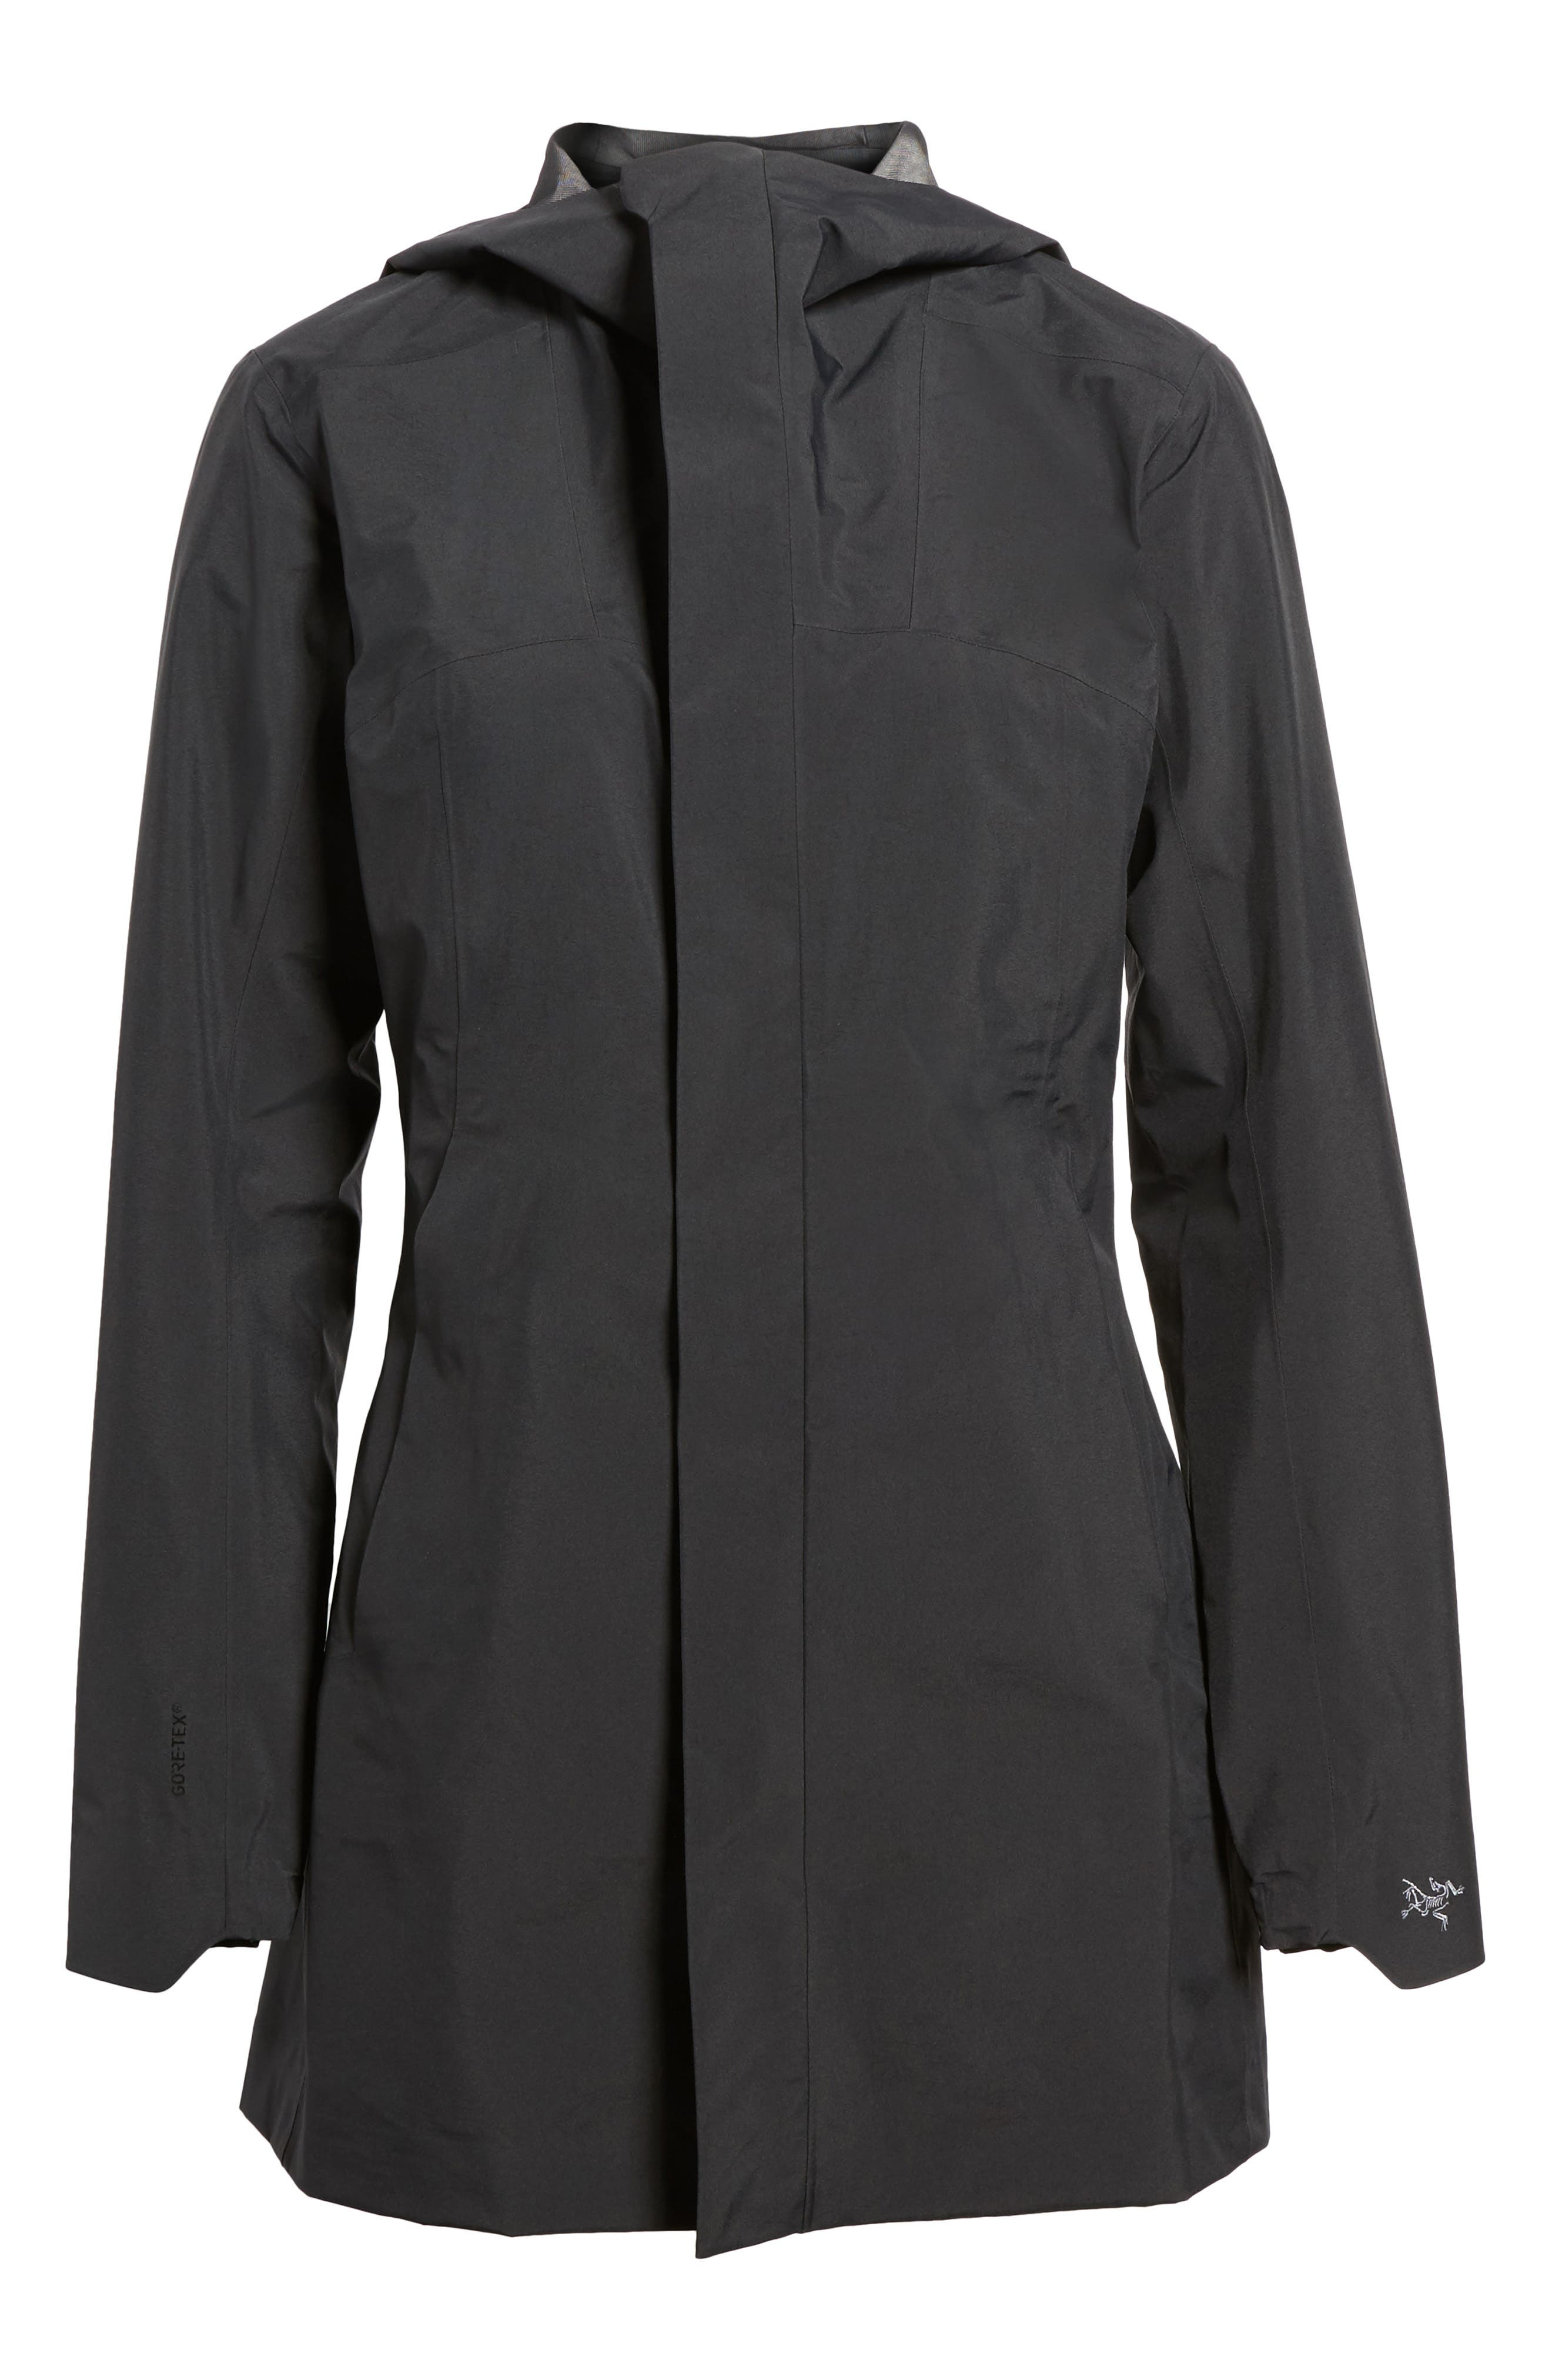 Codetta Waterproof Relaxed Fit Gore-Tex<sup>®</sup> 3L Rain Jacket,                             Alternate thumbnail 6, color,                             001